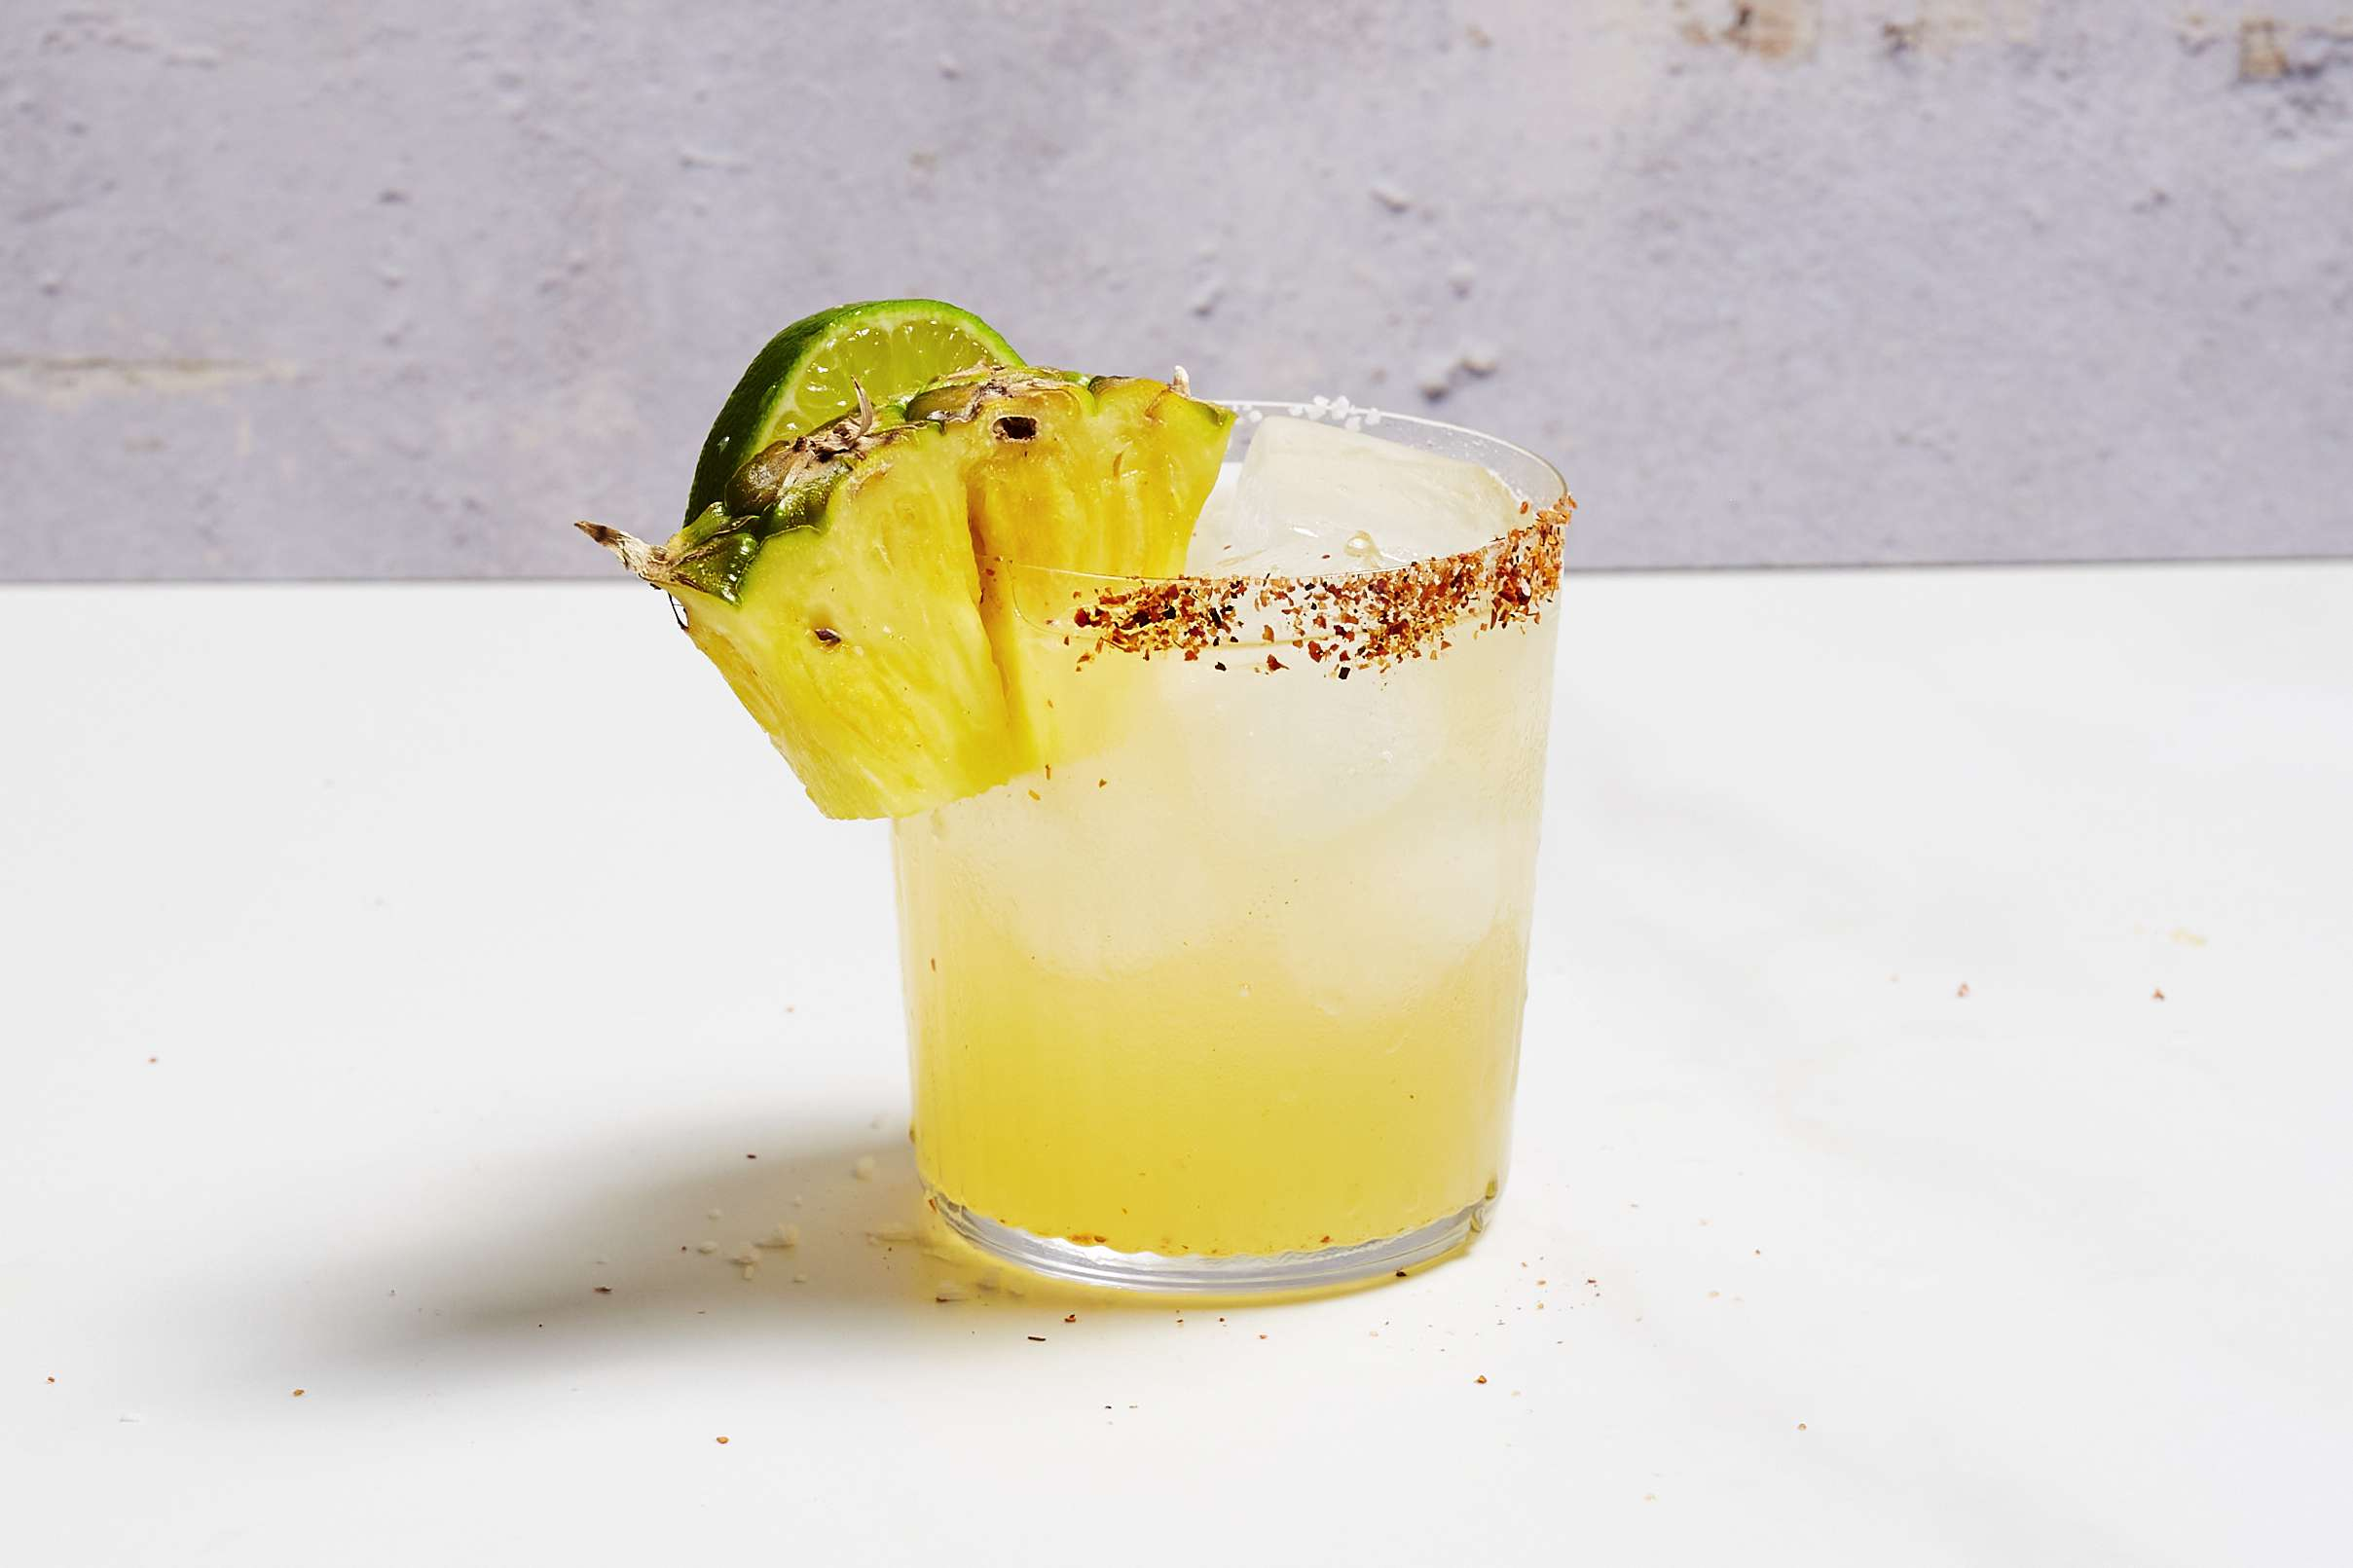 Pineapple Chili Margarita, garnished with pineapple and lime